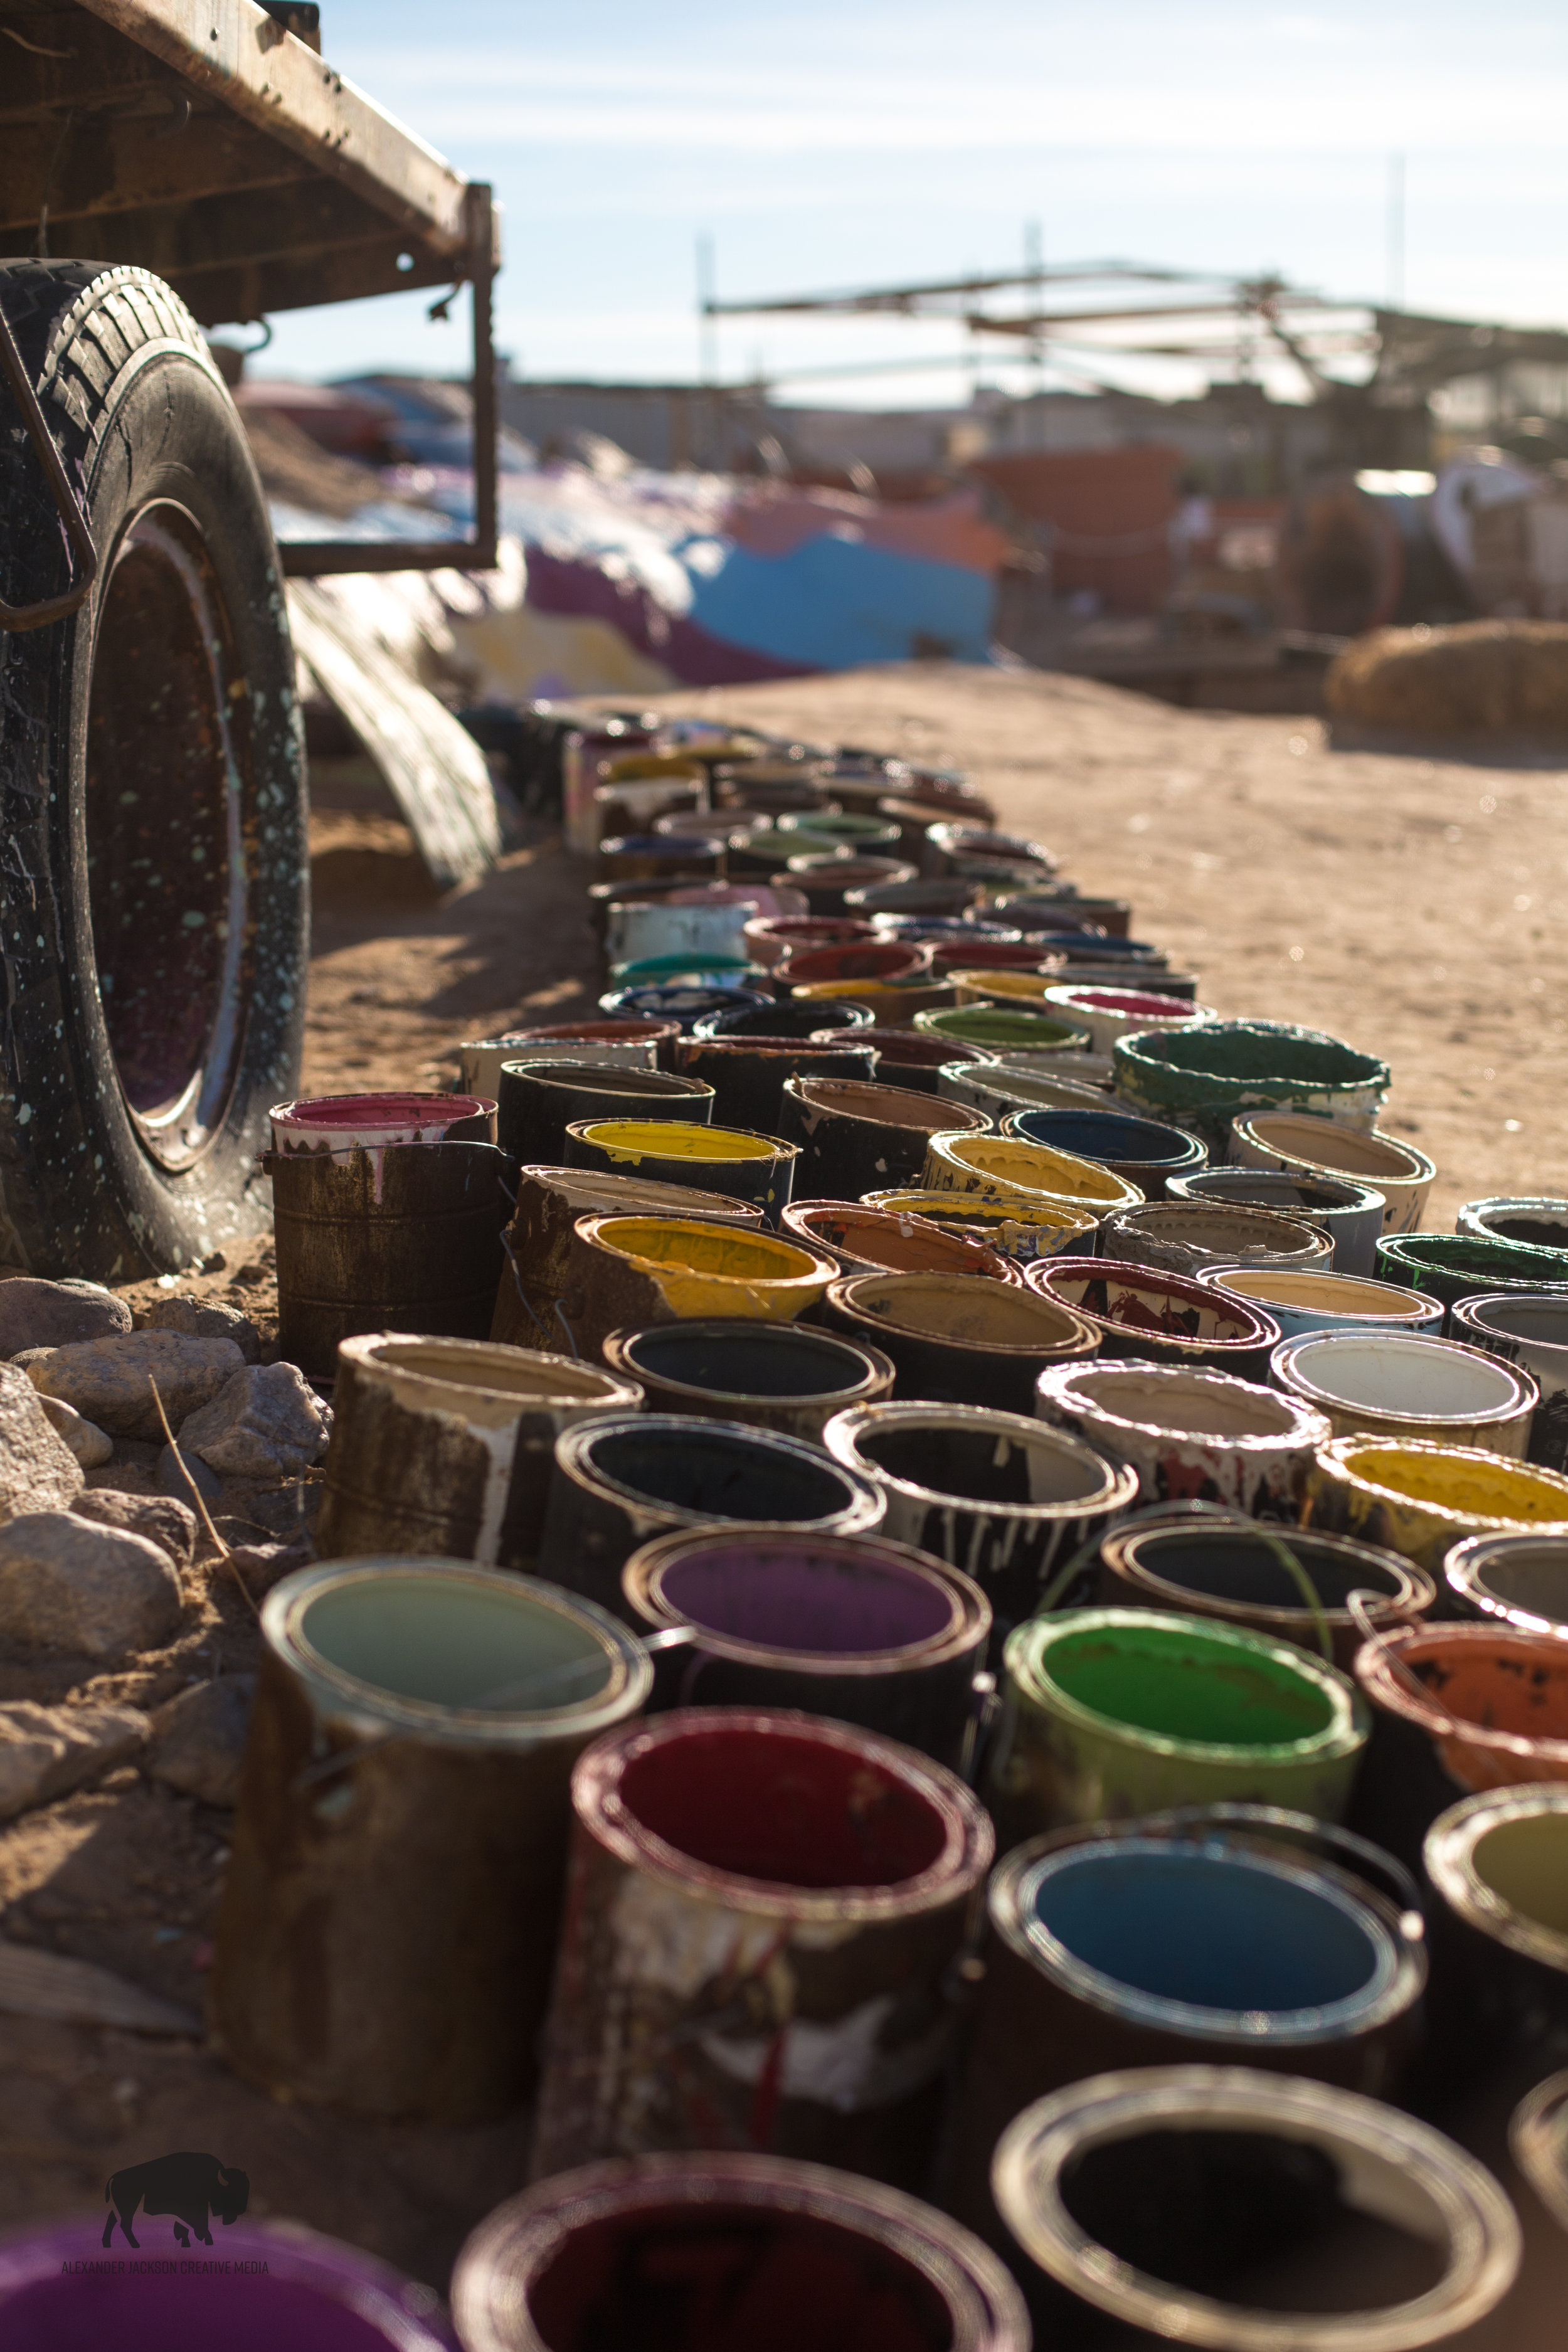 If you're looking for a little color in your life, go to Salvation Mountain.